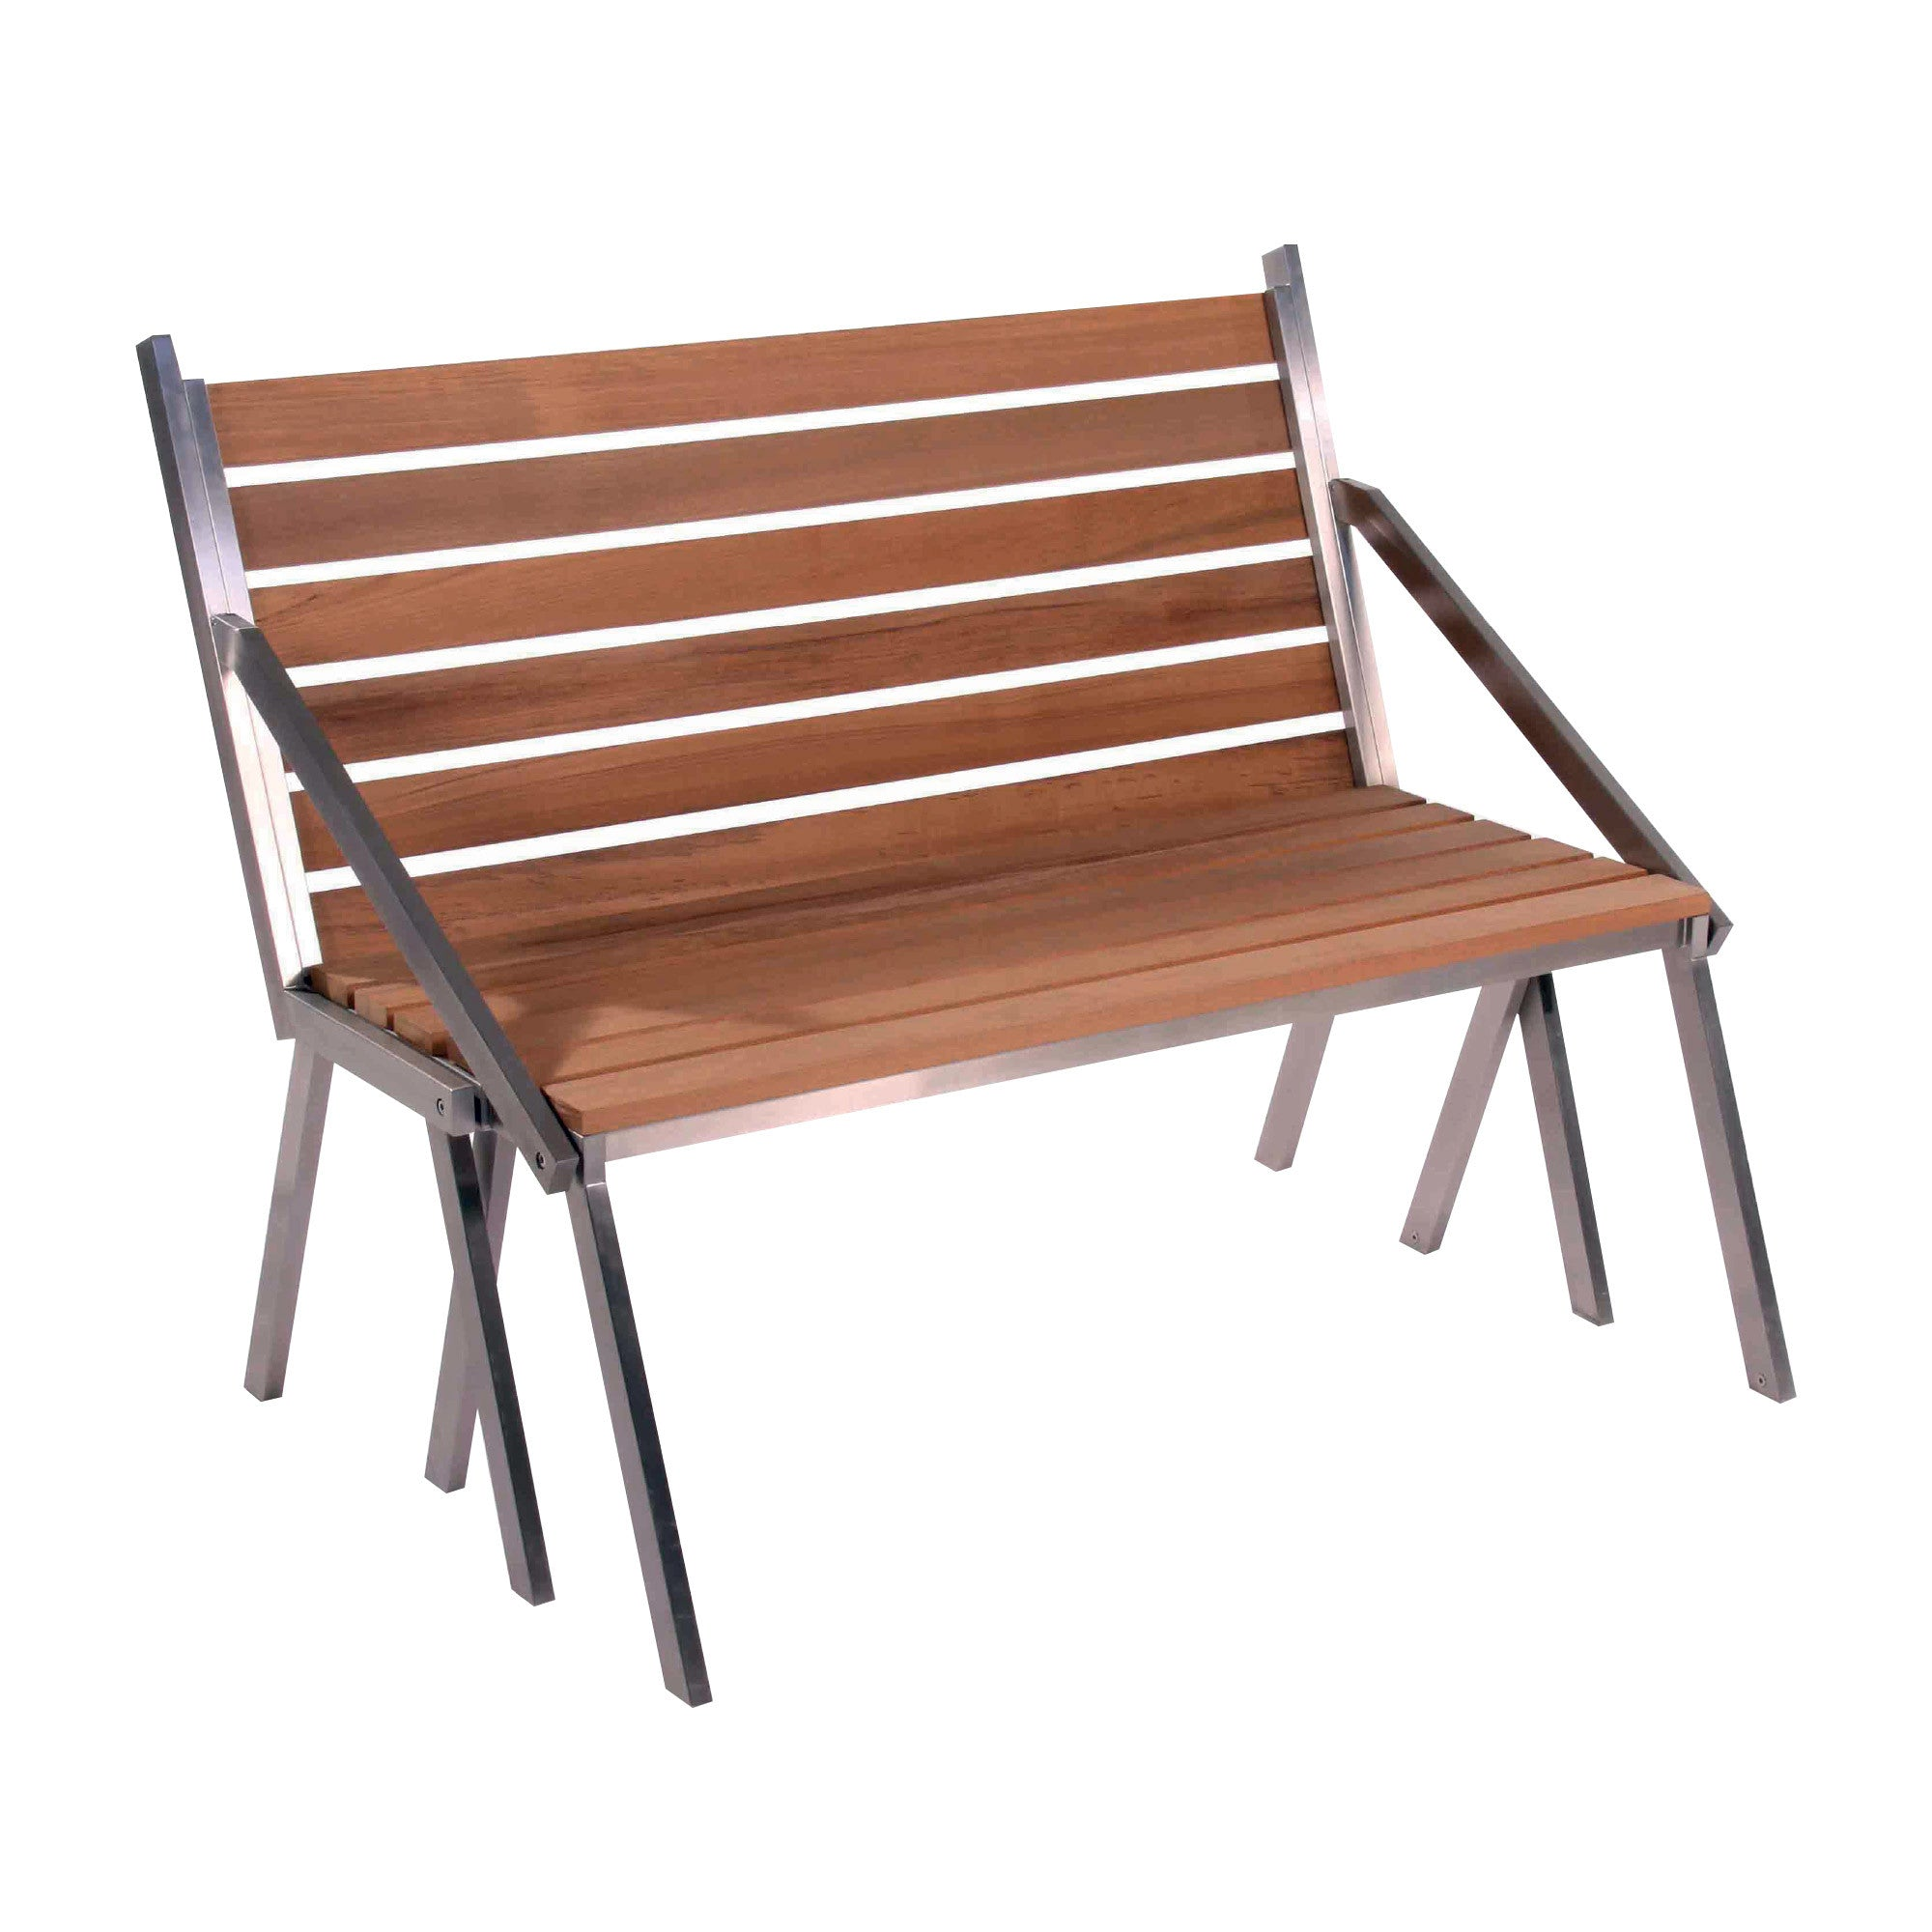 outdoor home reviews beachcrest ca wayfair windermere table pdp picnic bench